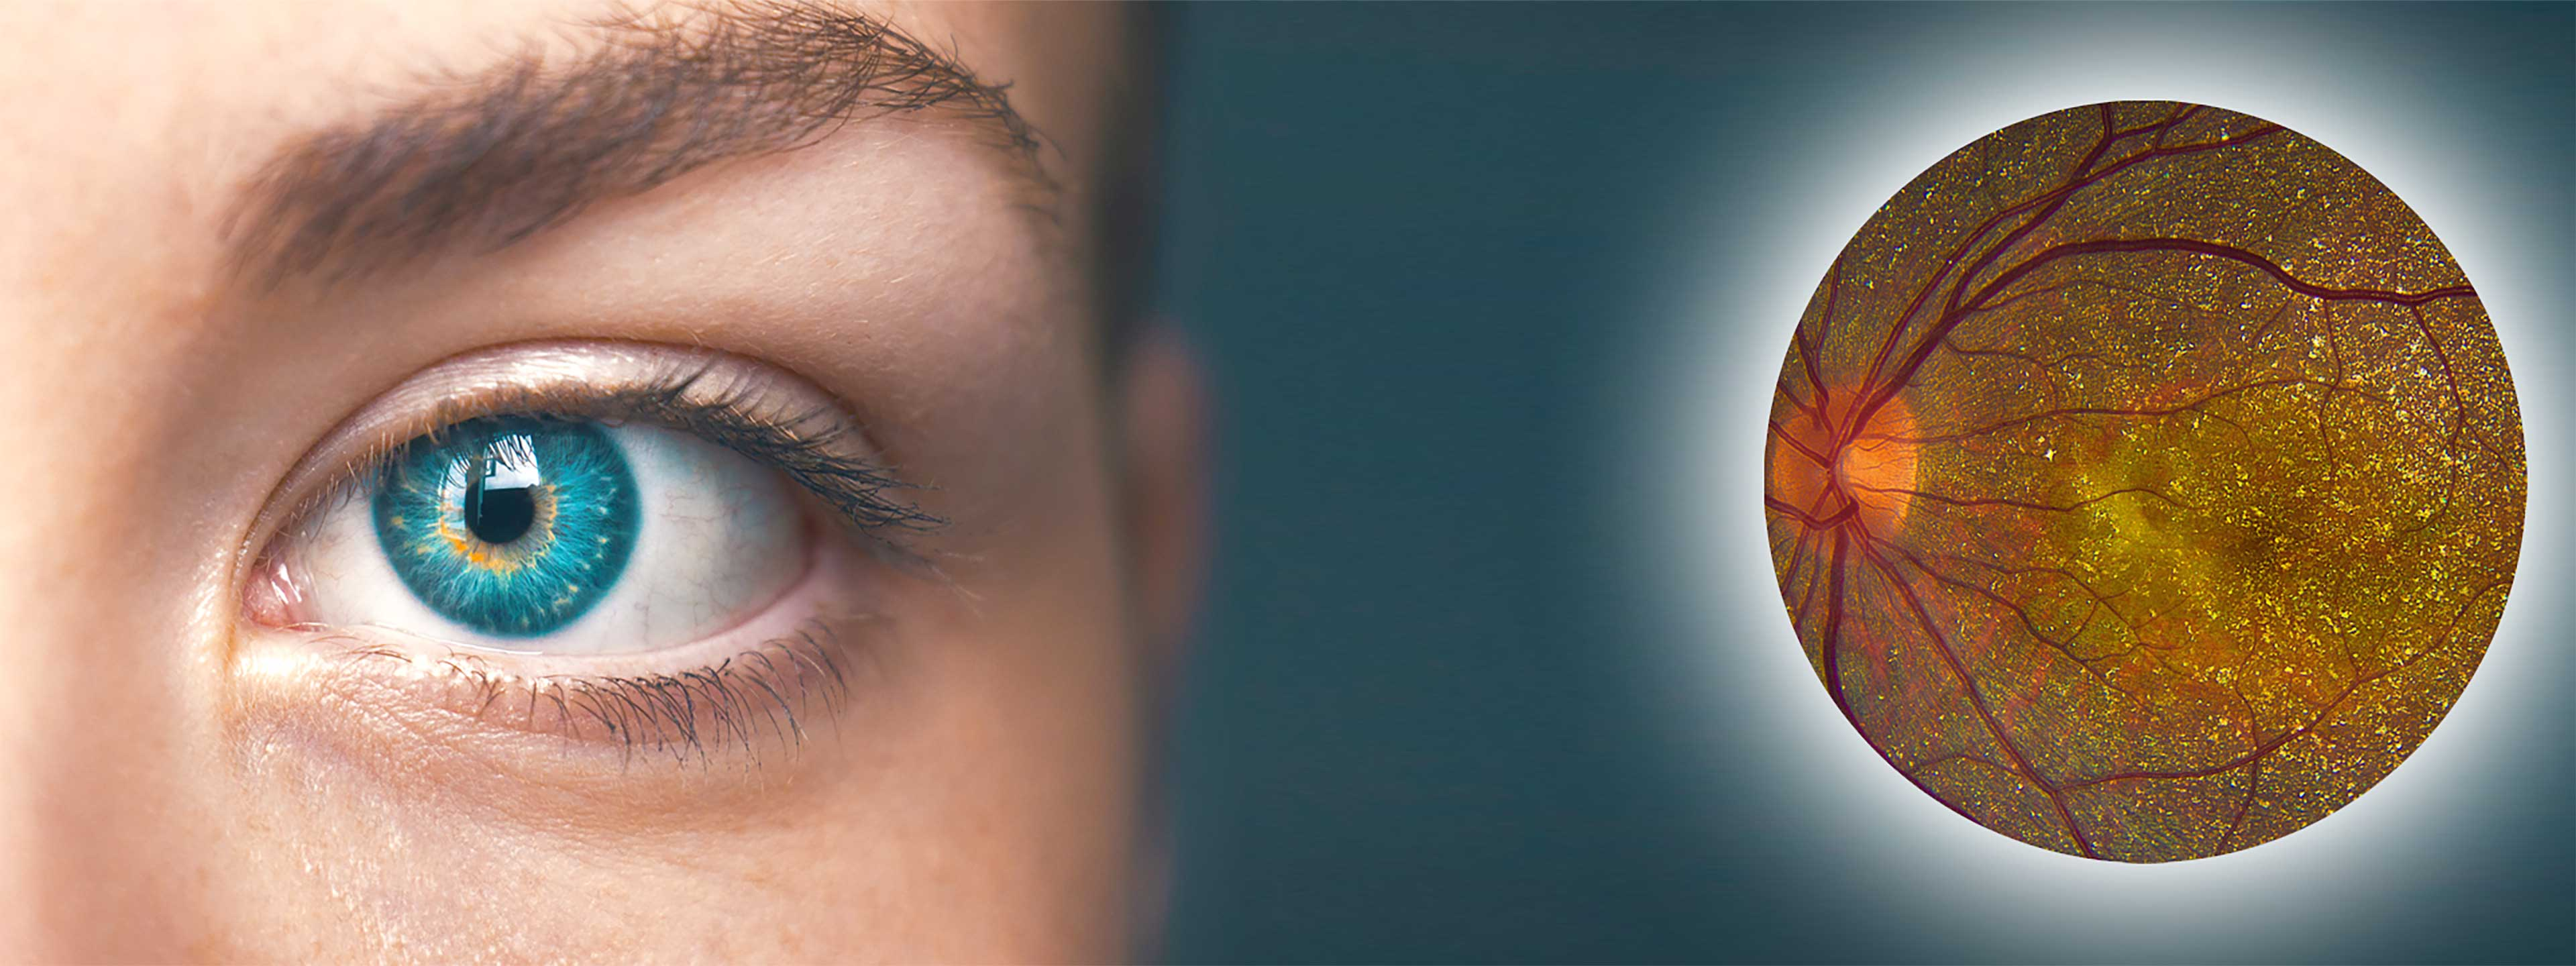 BCD is an often-misdiagnosed retinal disease.